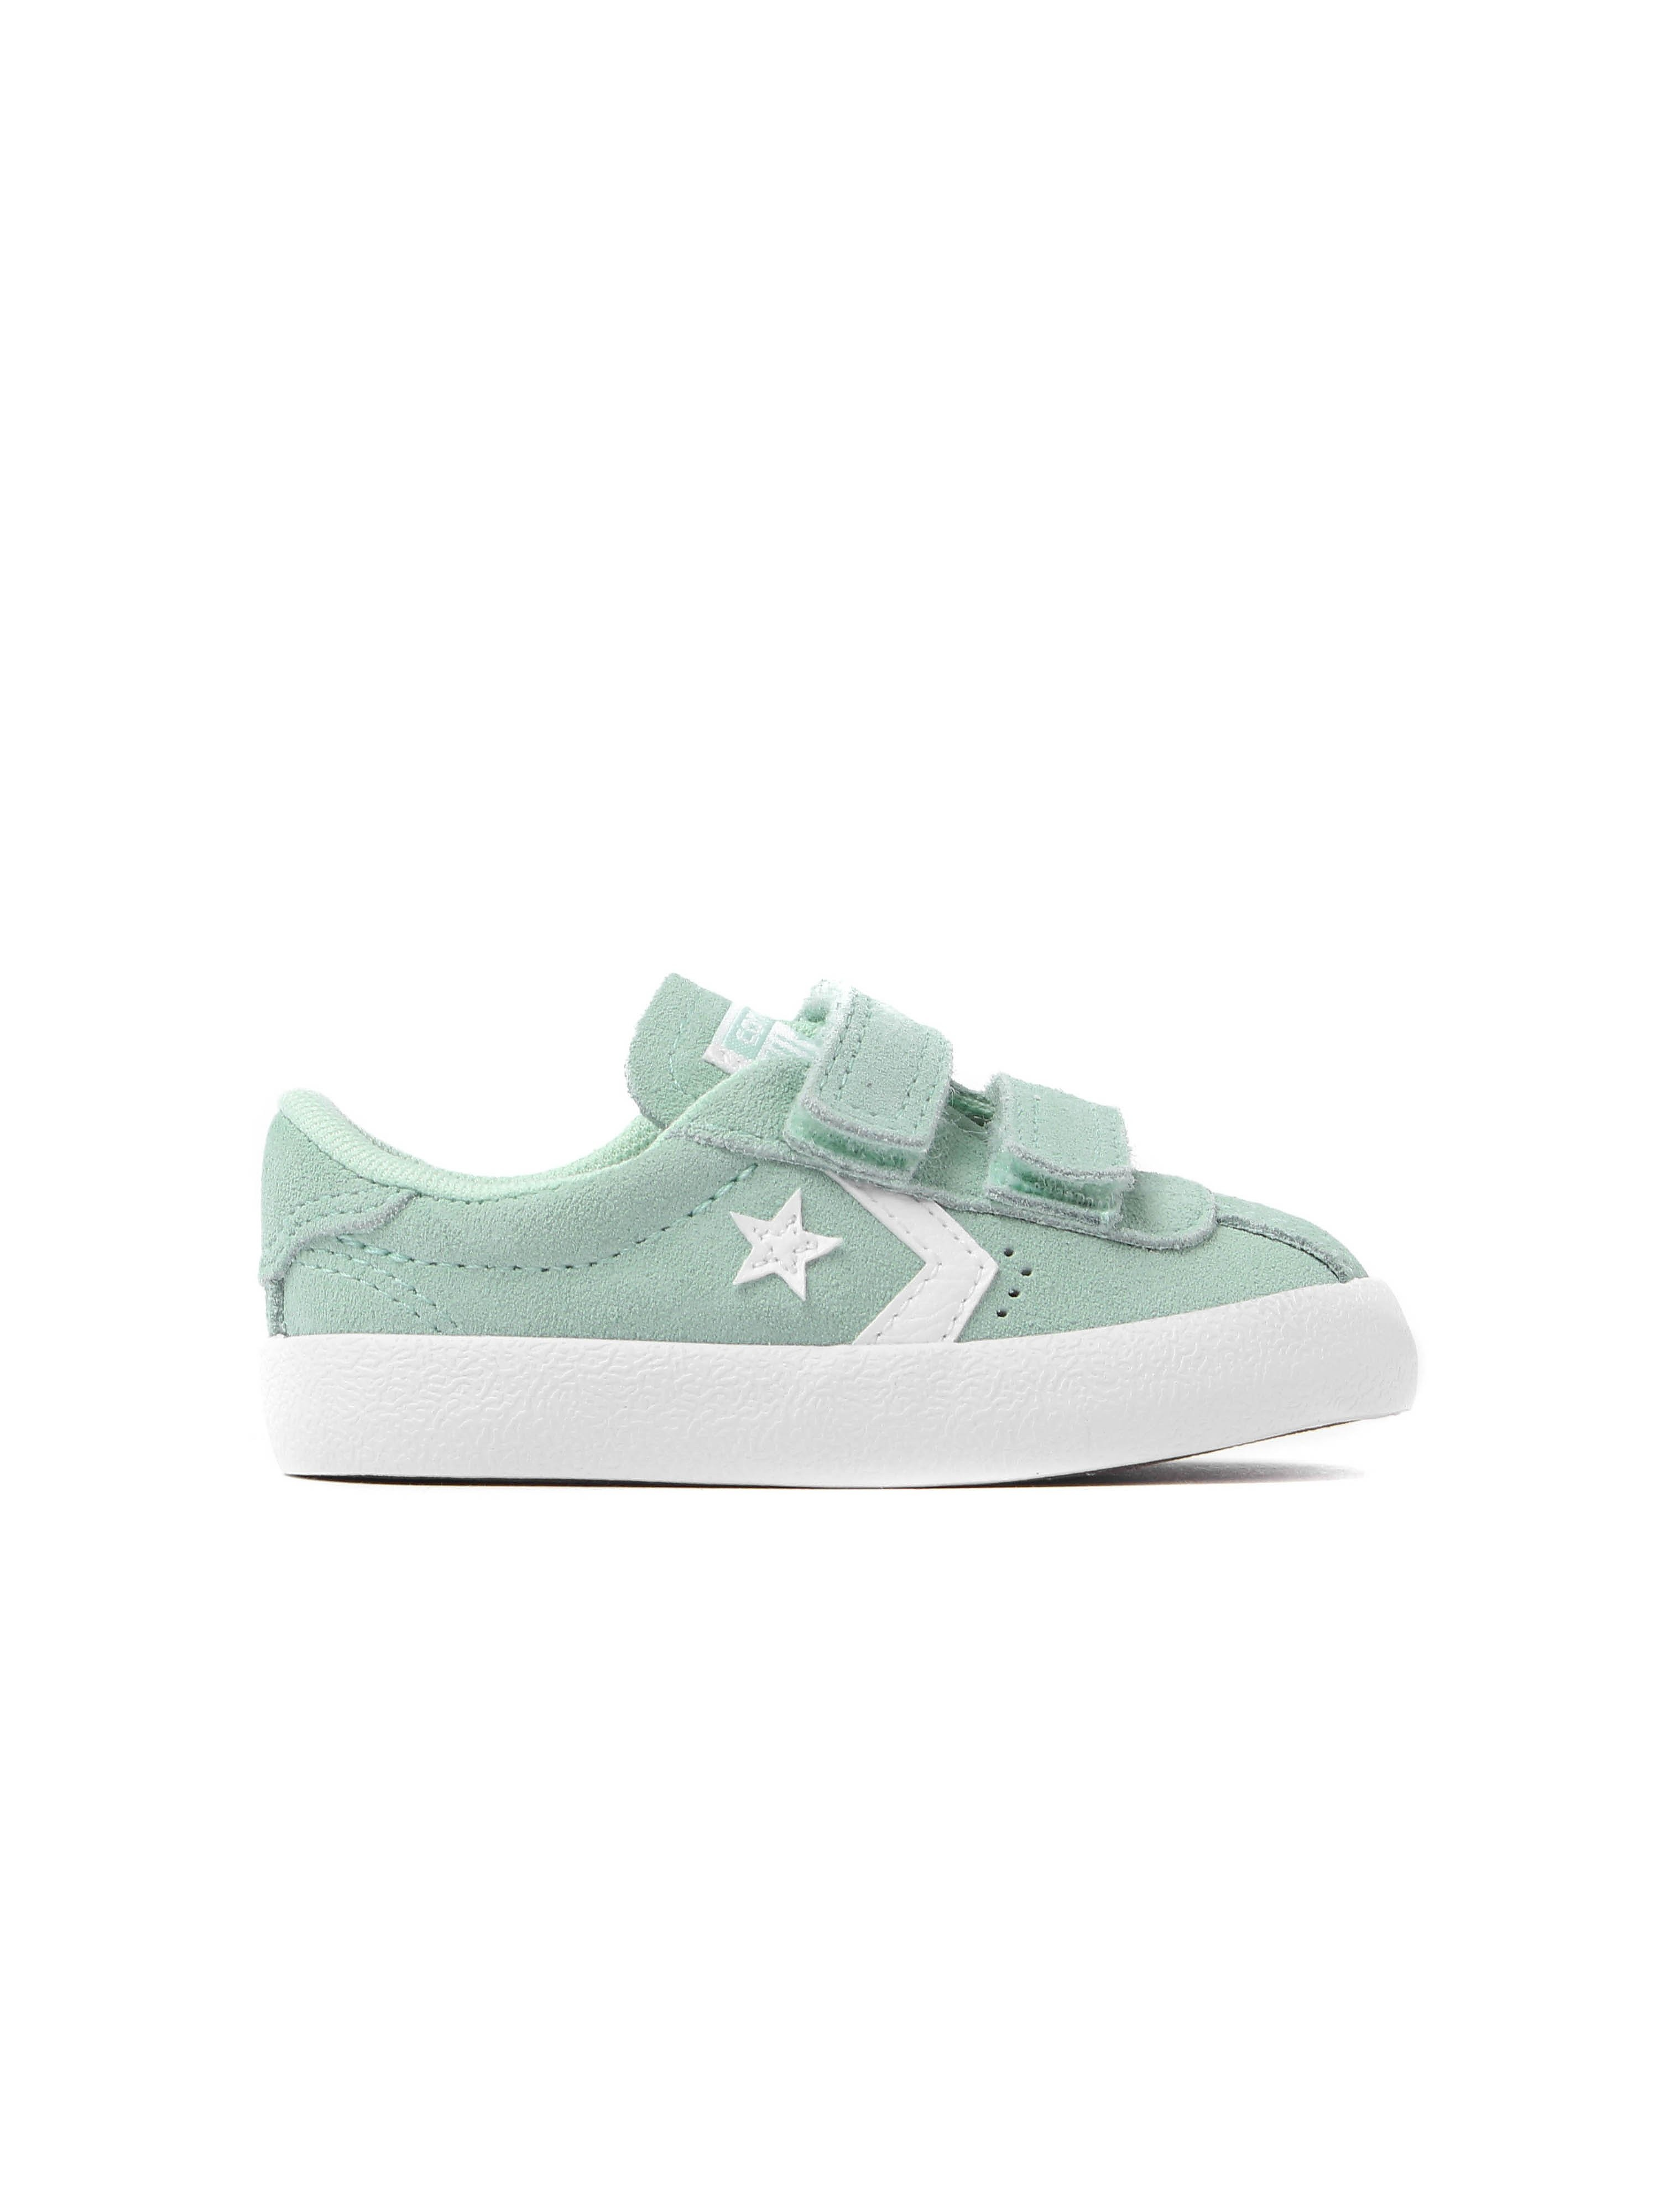 Converse Infants Breakpoint 2V Suede Trainers - Mint Foam